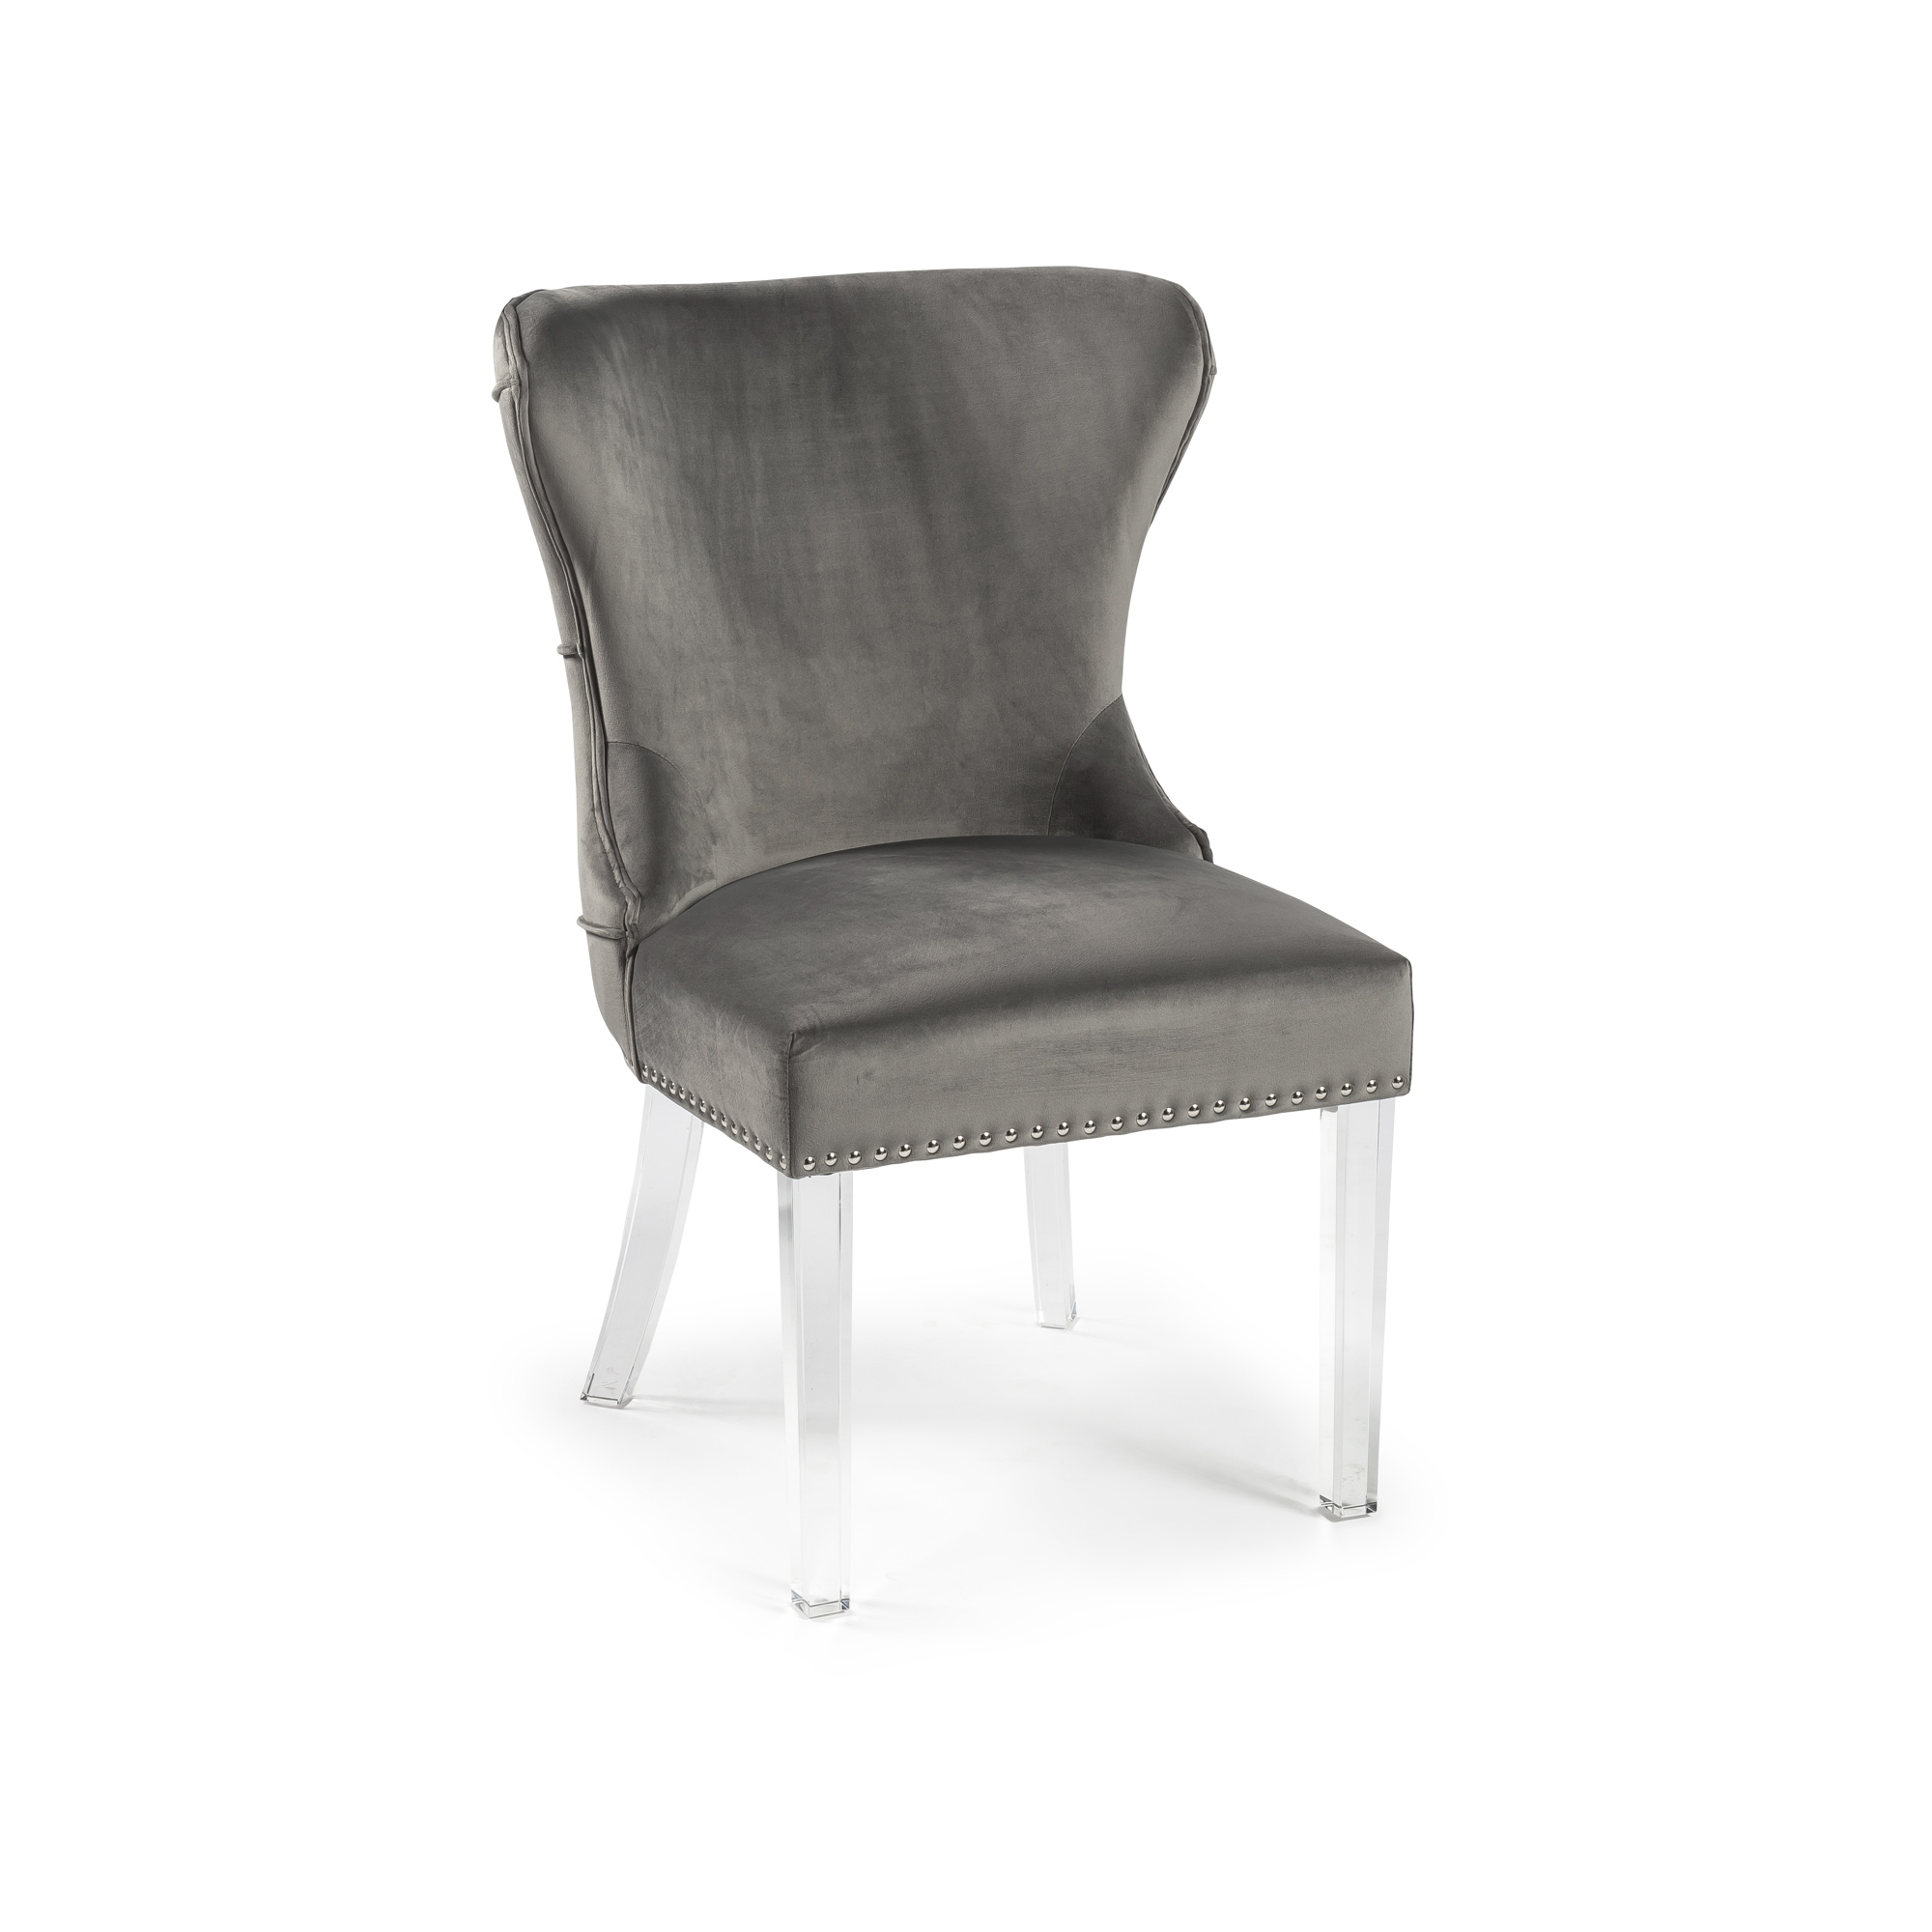 Grey Brushed Dining Chair with Acrylic Legs